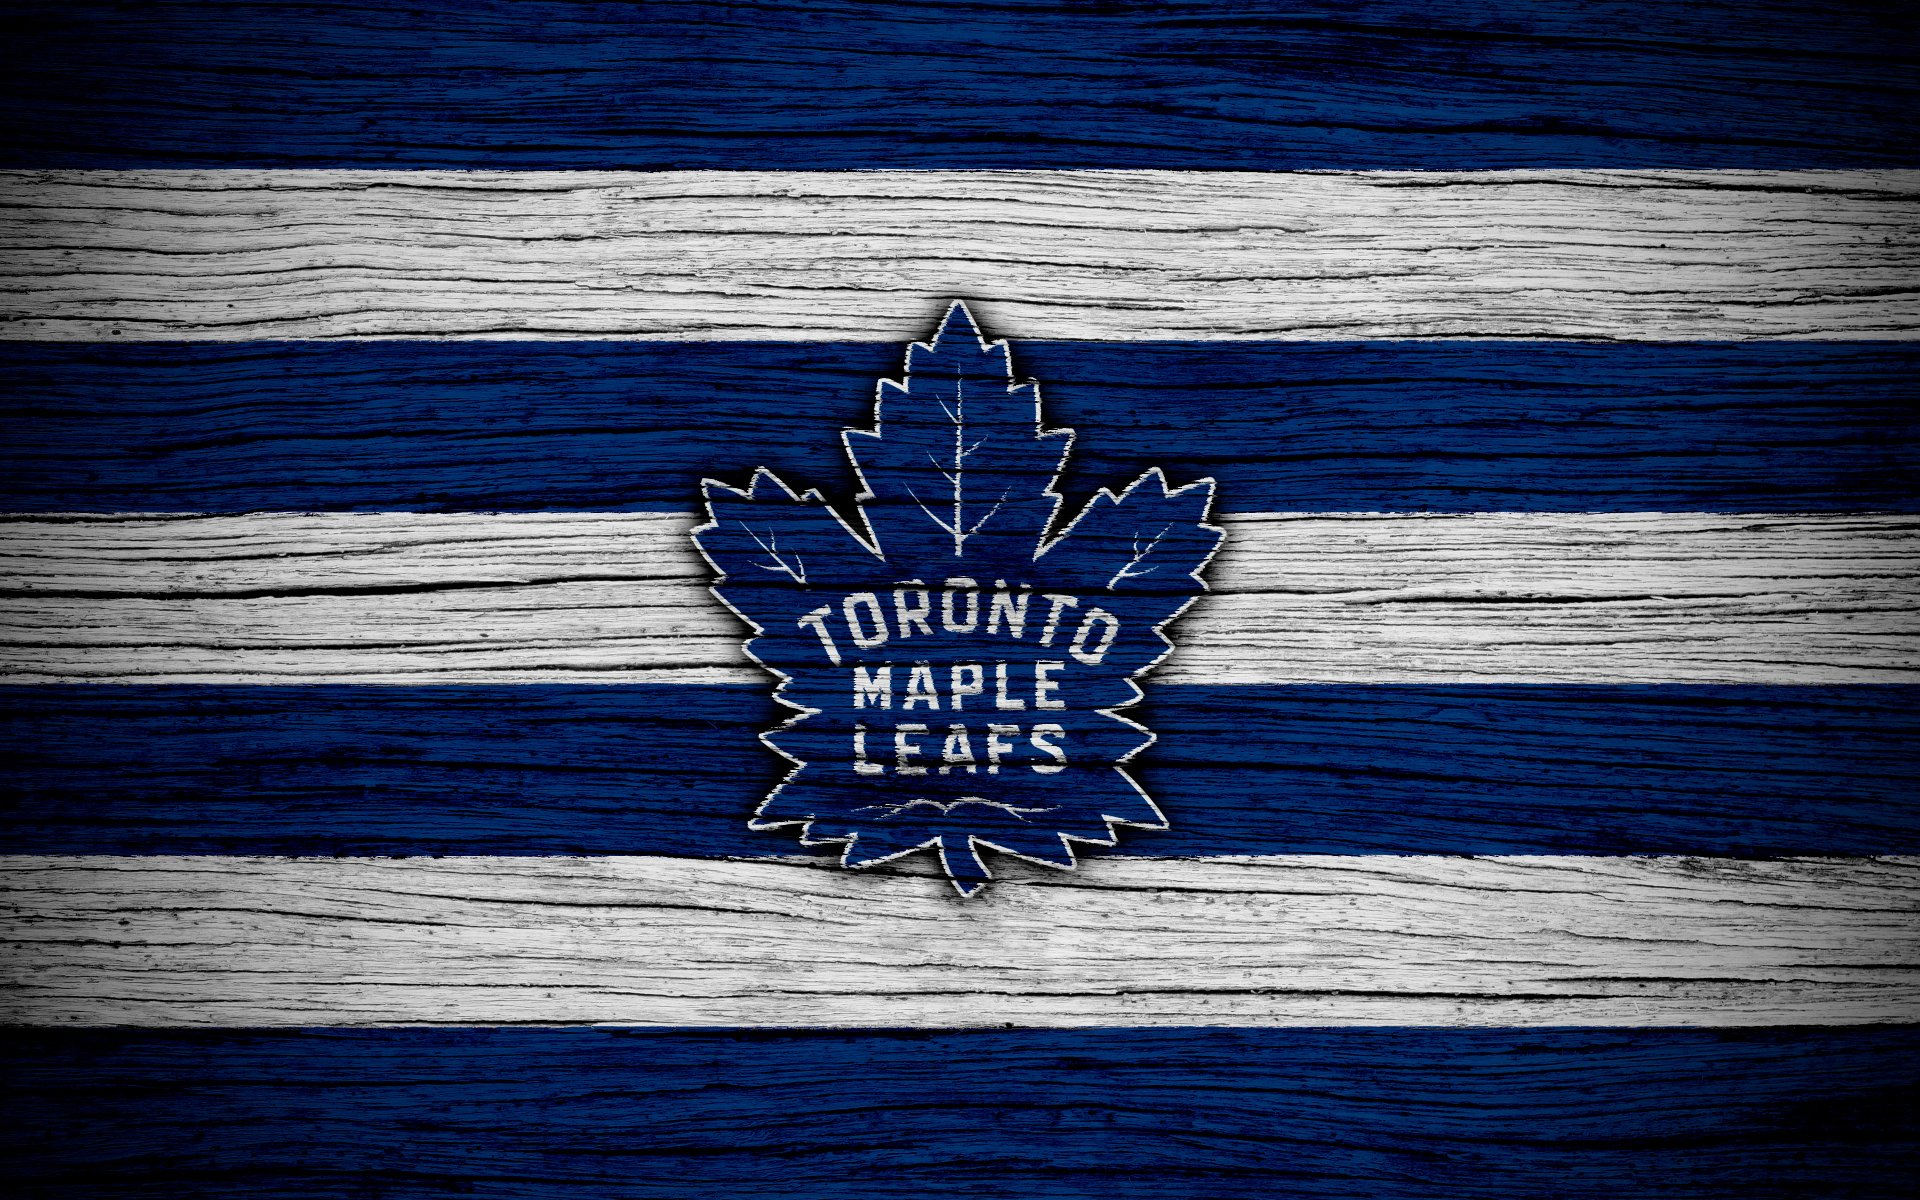 9 4k Ultra Hd Toronto Maple Leafs Wallpapers Background Images Wallpaper Abyss